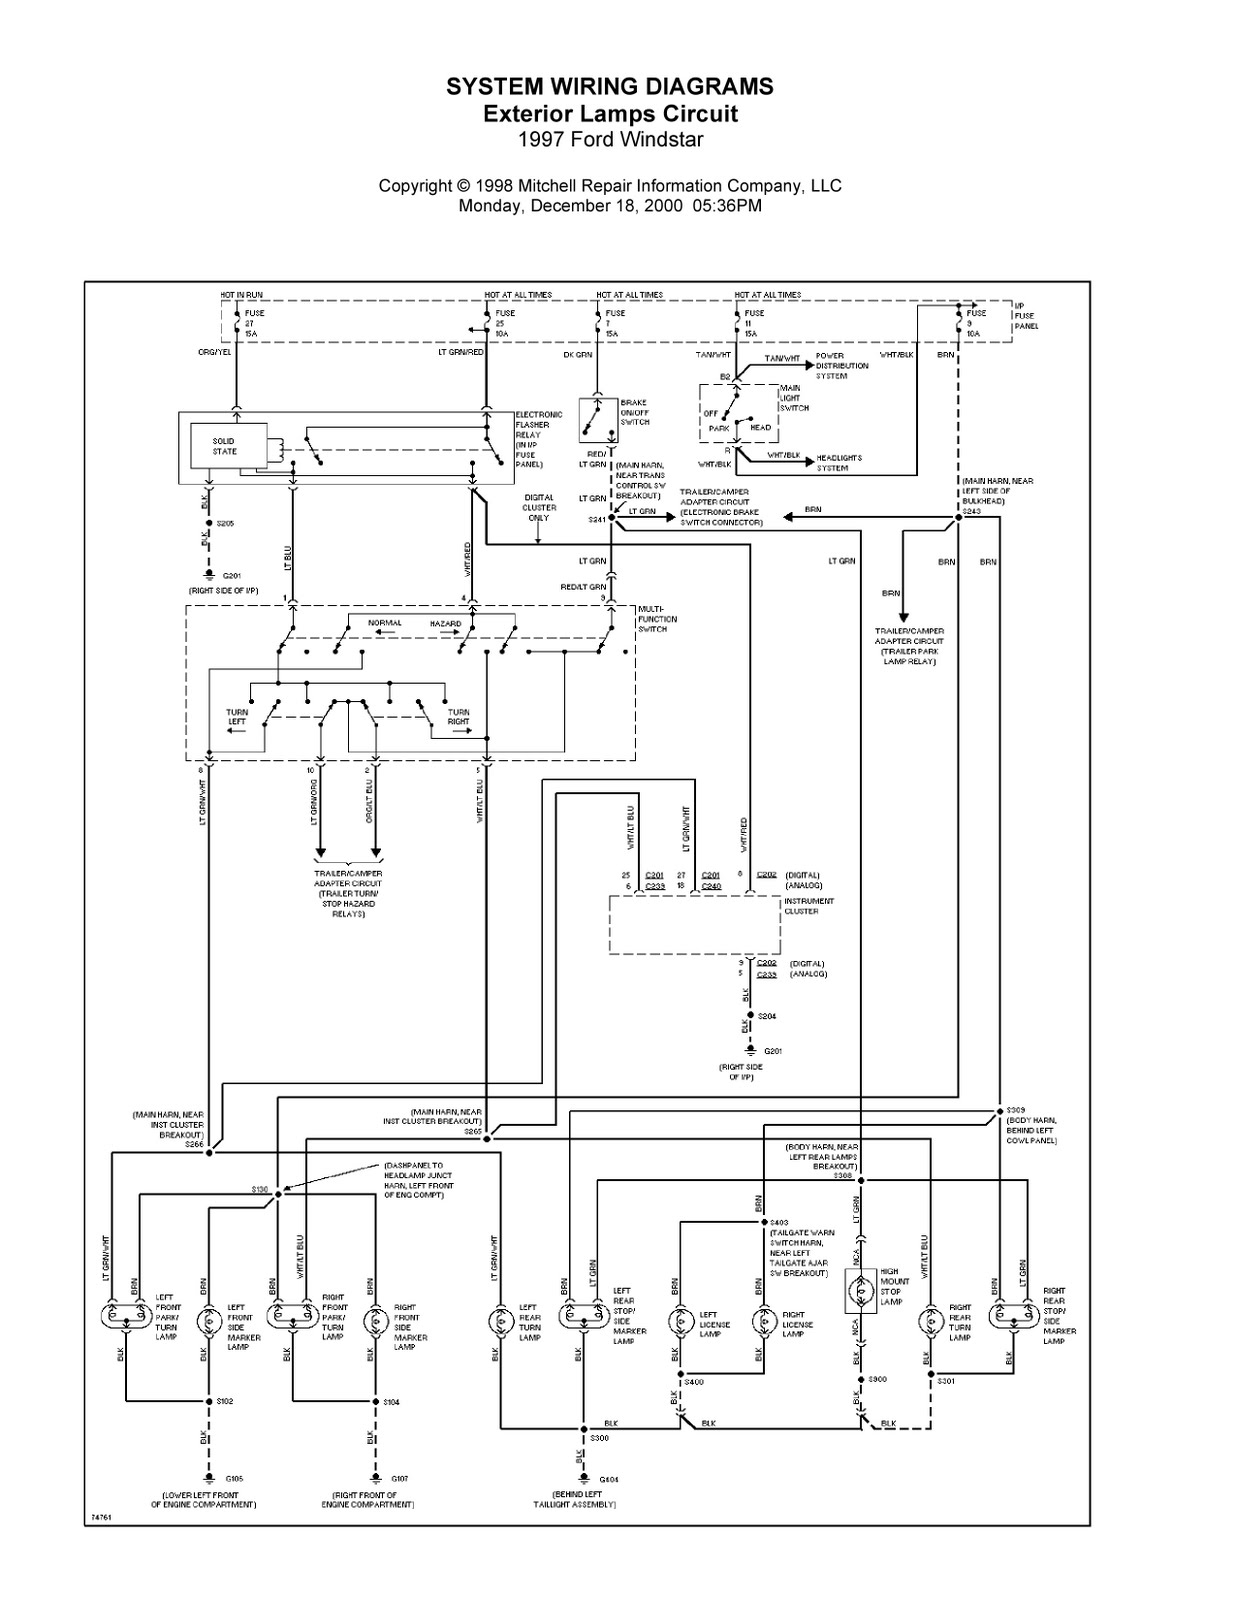 Wiring Diagram Ford Windstar 2002 Complete System Diagrams 1997 Real 2003 Fuse